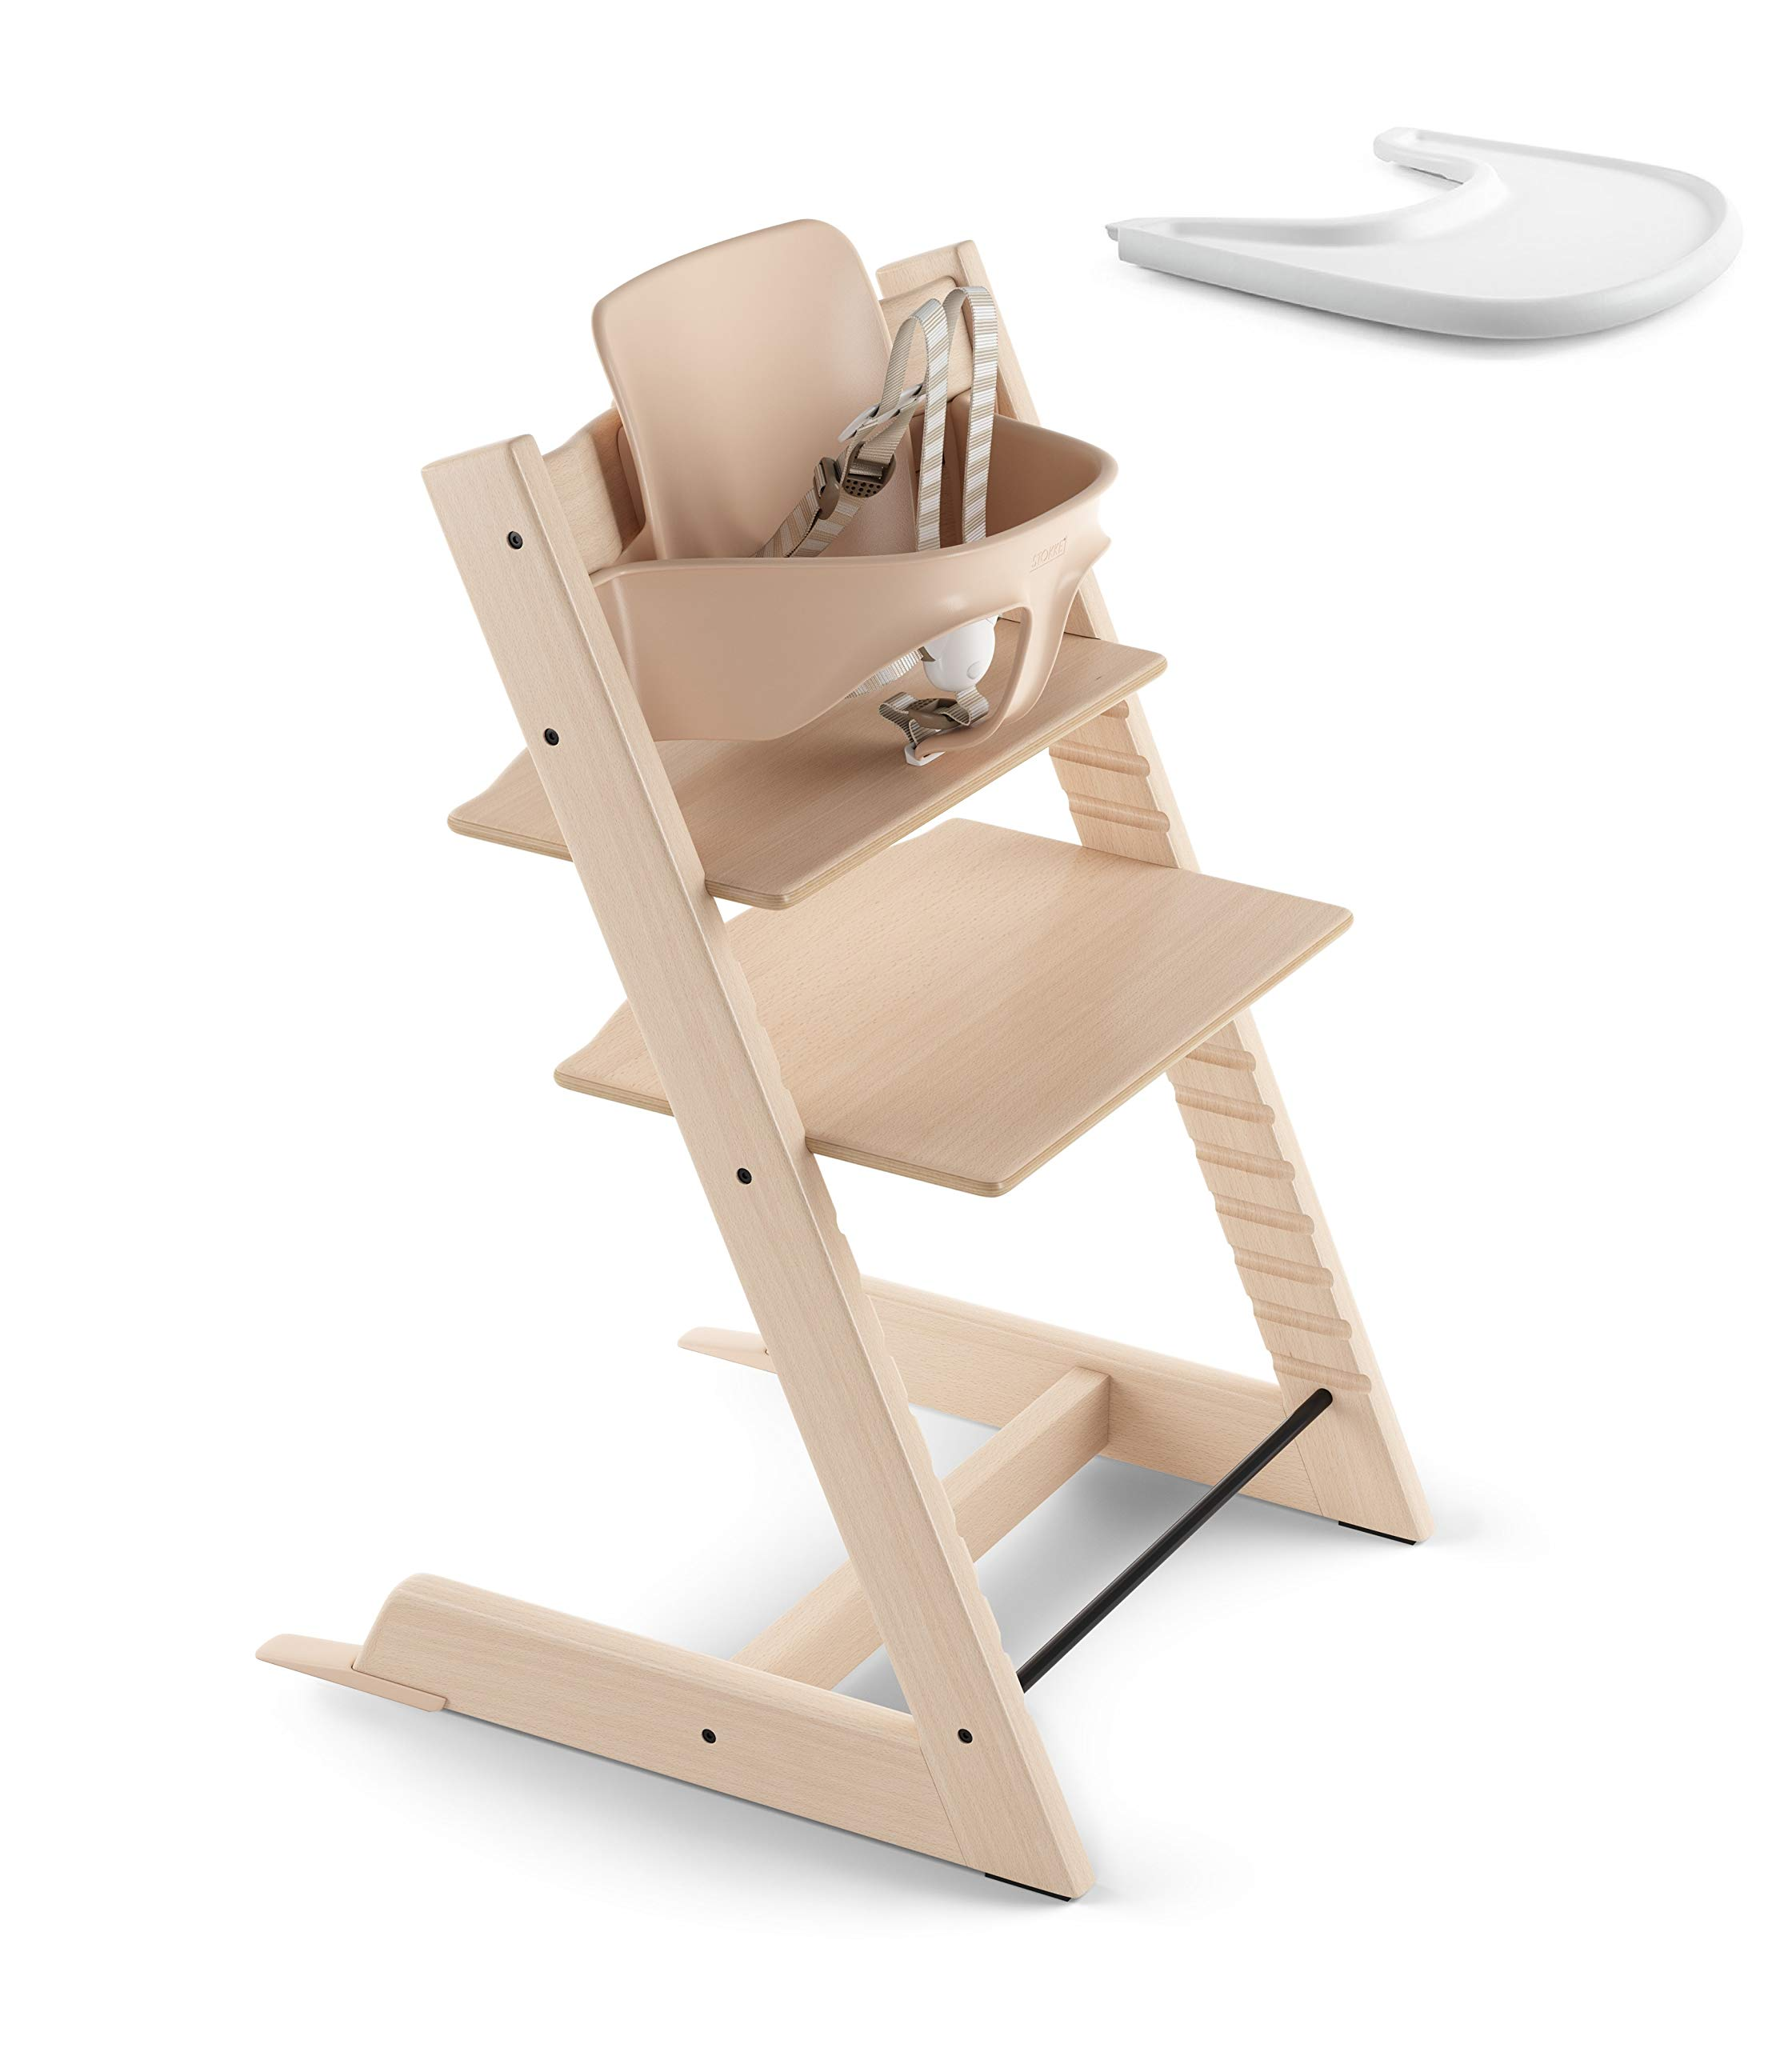 Stokke 2019 Tripp Trapp Natural High Chair & White Tray Bundle by Stokke